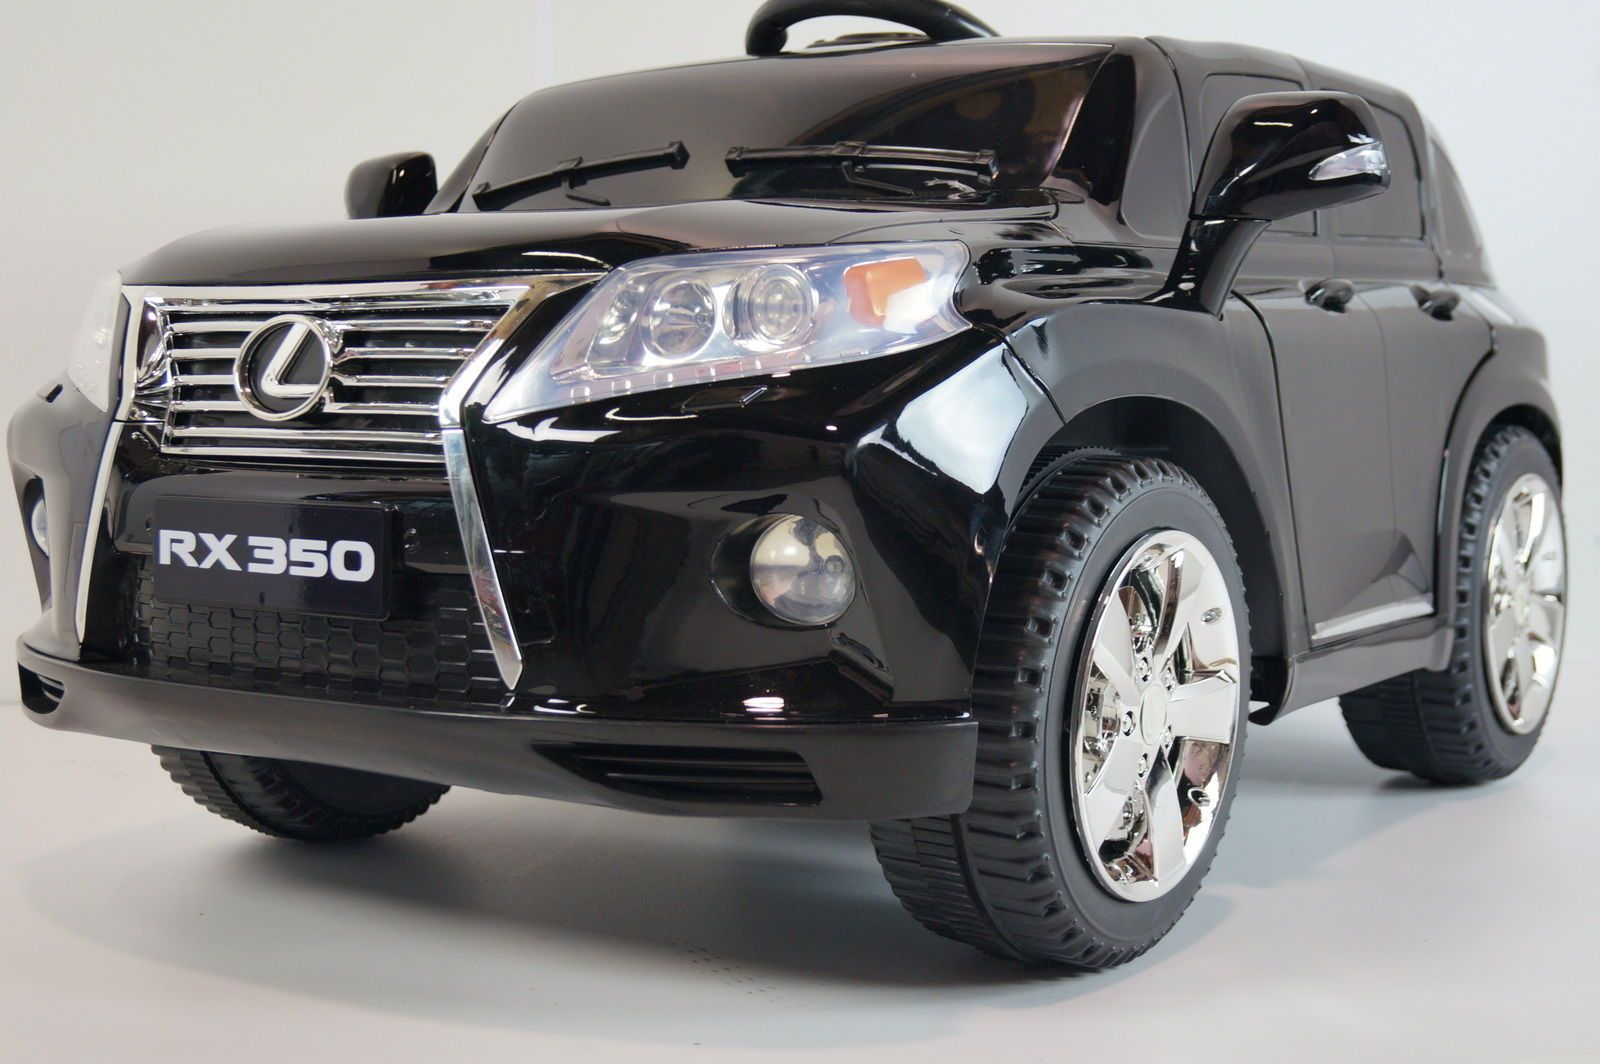 Rideonecar Battery Operated Ride On Toy Car For Kids Lexus Rx350 Suv Black Toy Cars For Kids Ride On Toys Lexus Rx 350